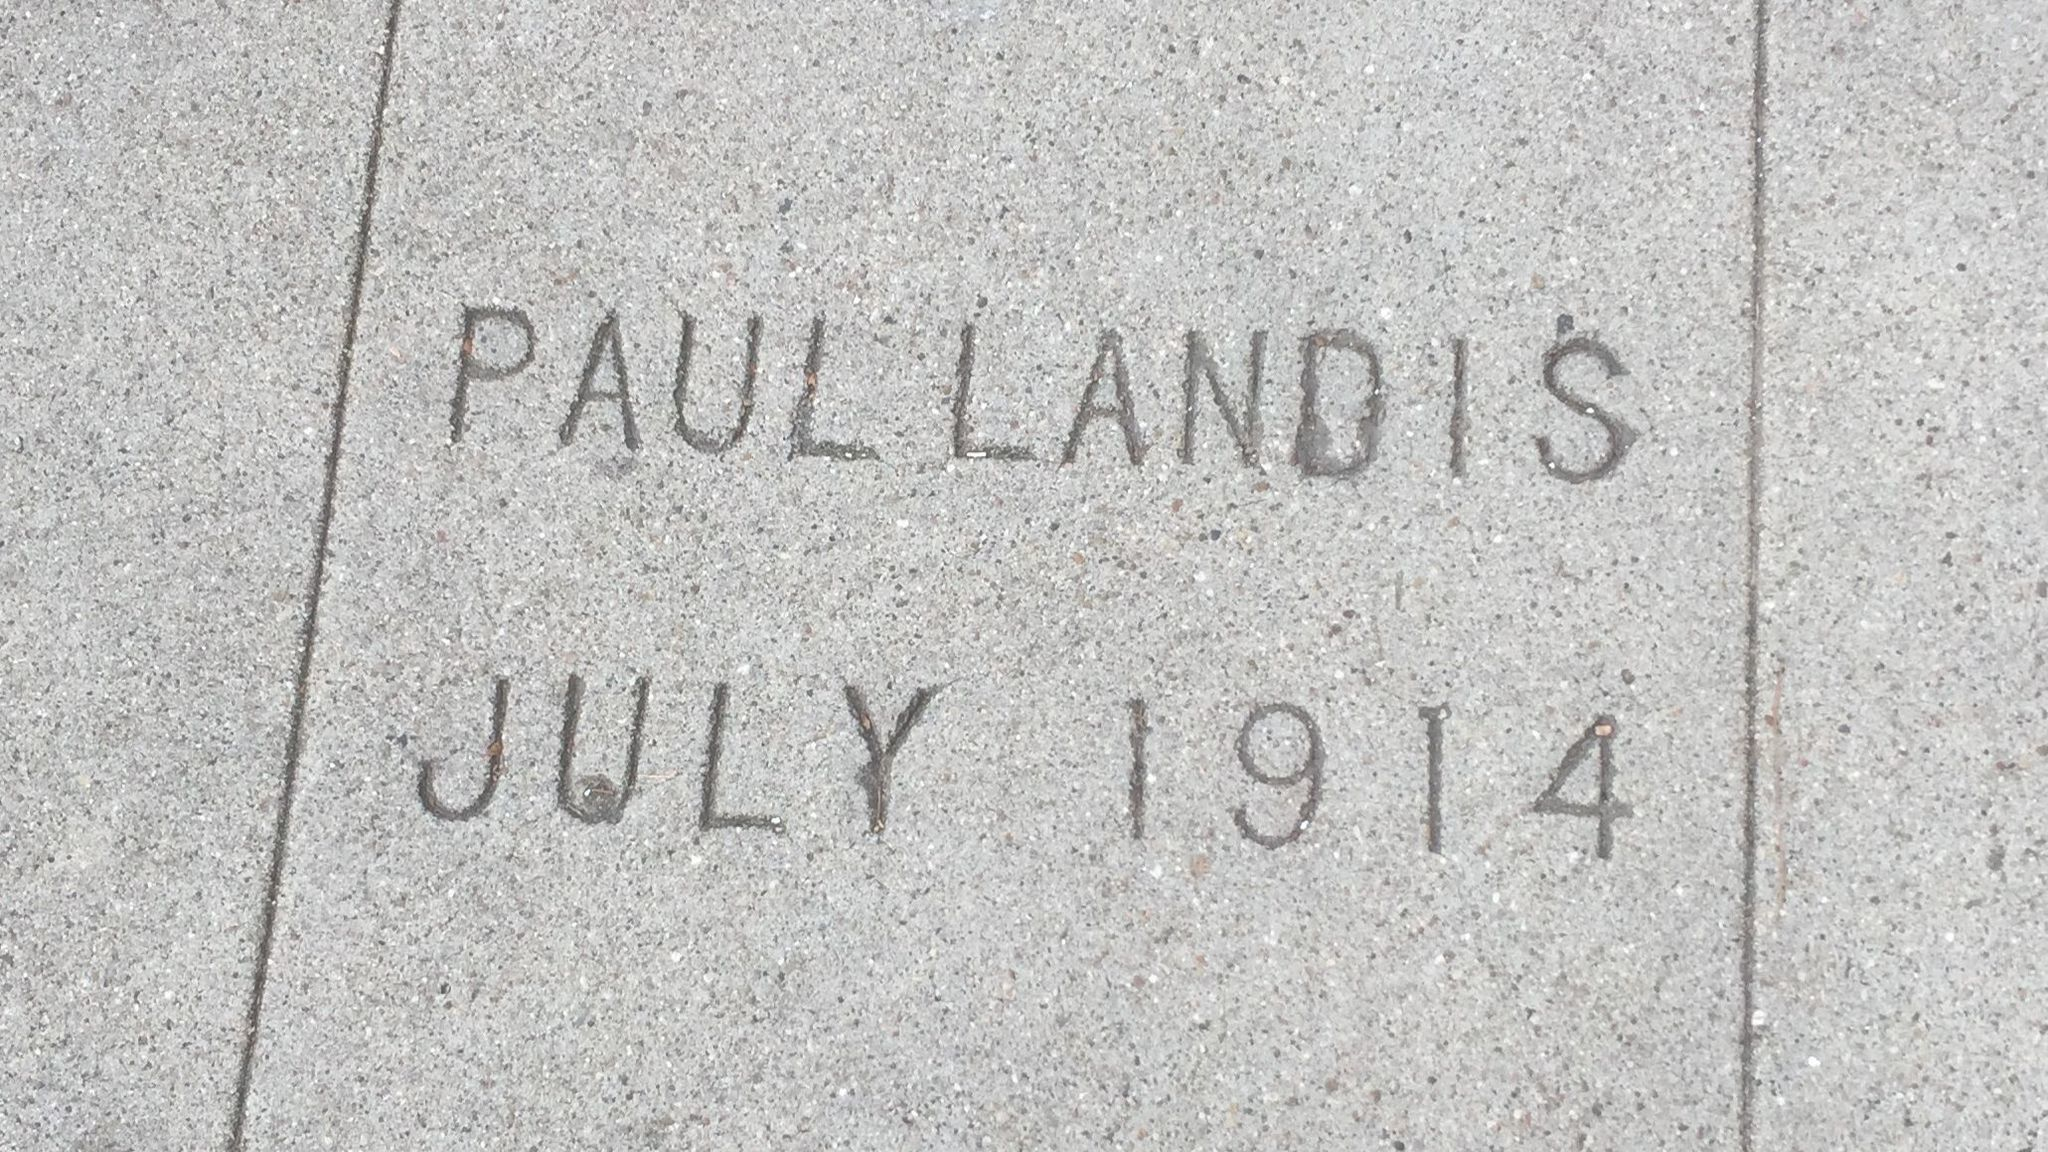 The Paul Landis sidewalk stamp evolves.